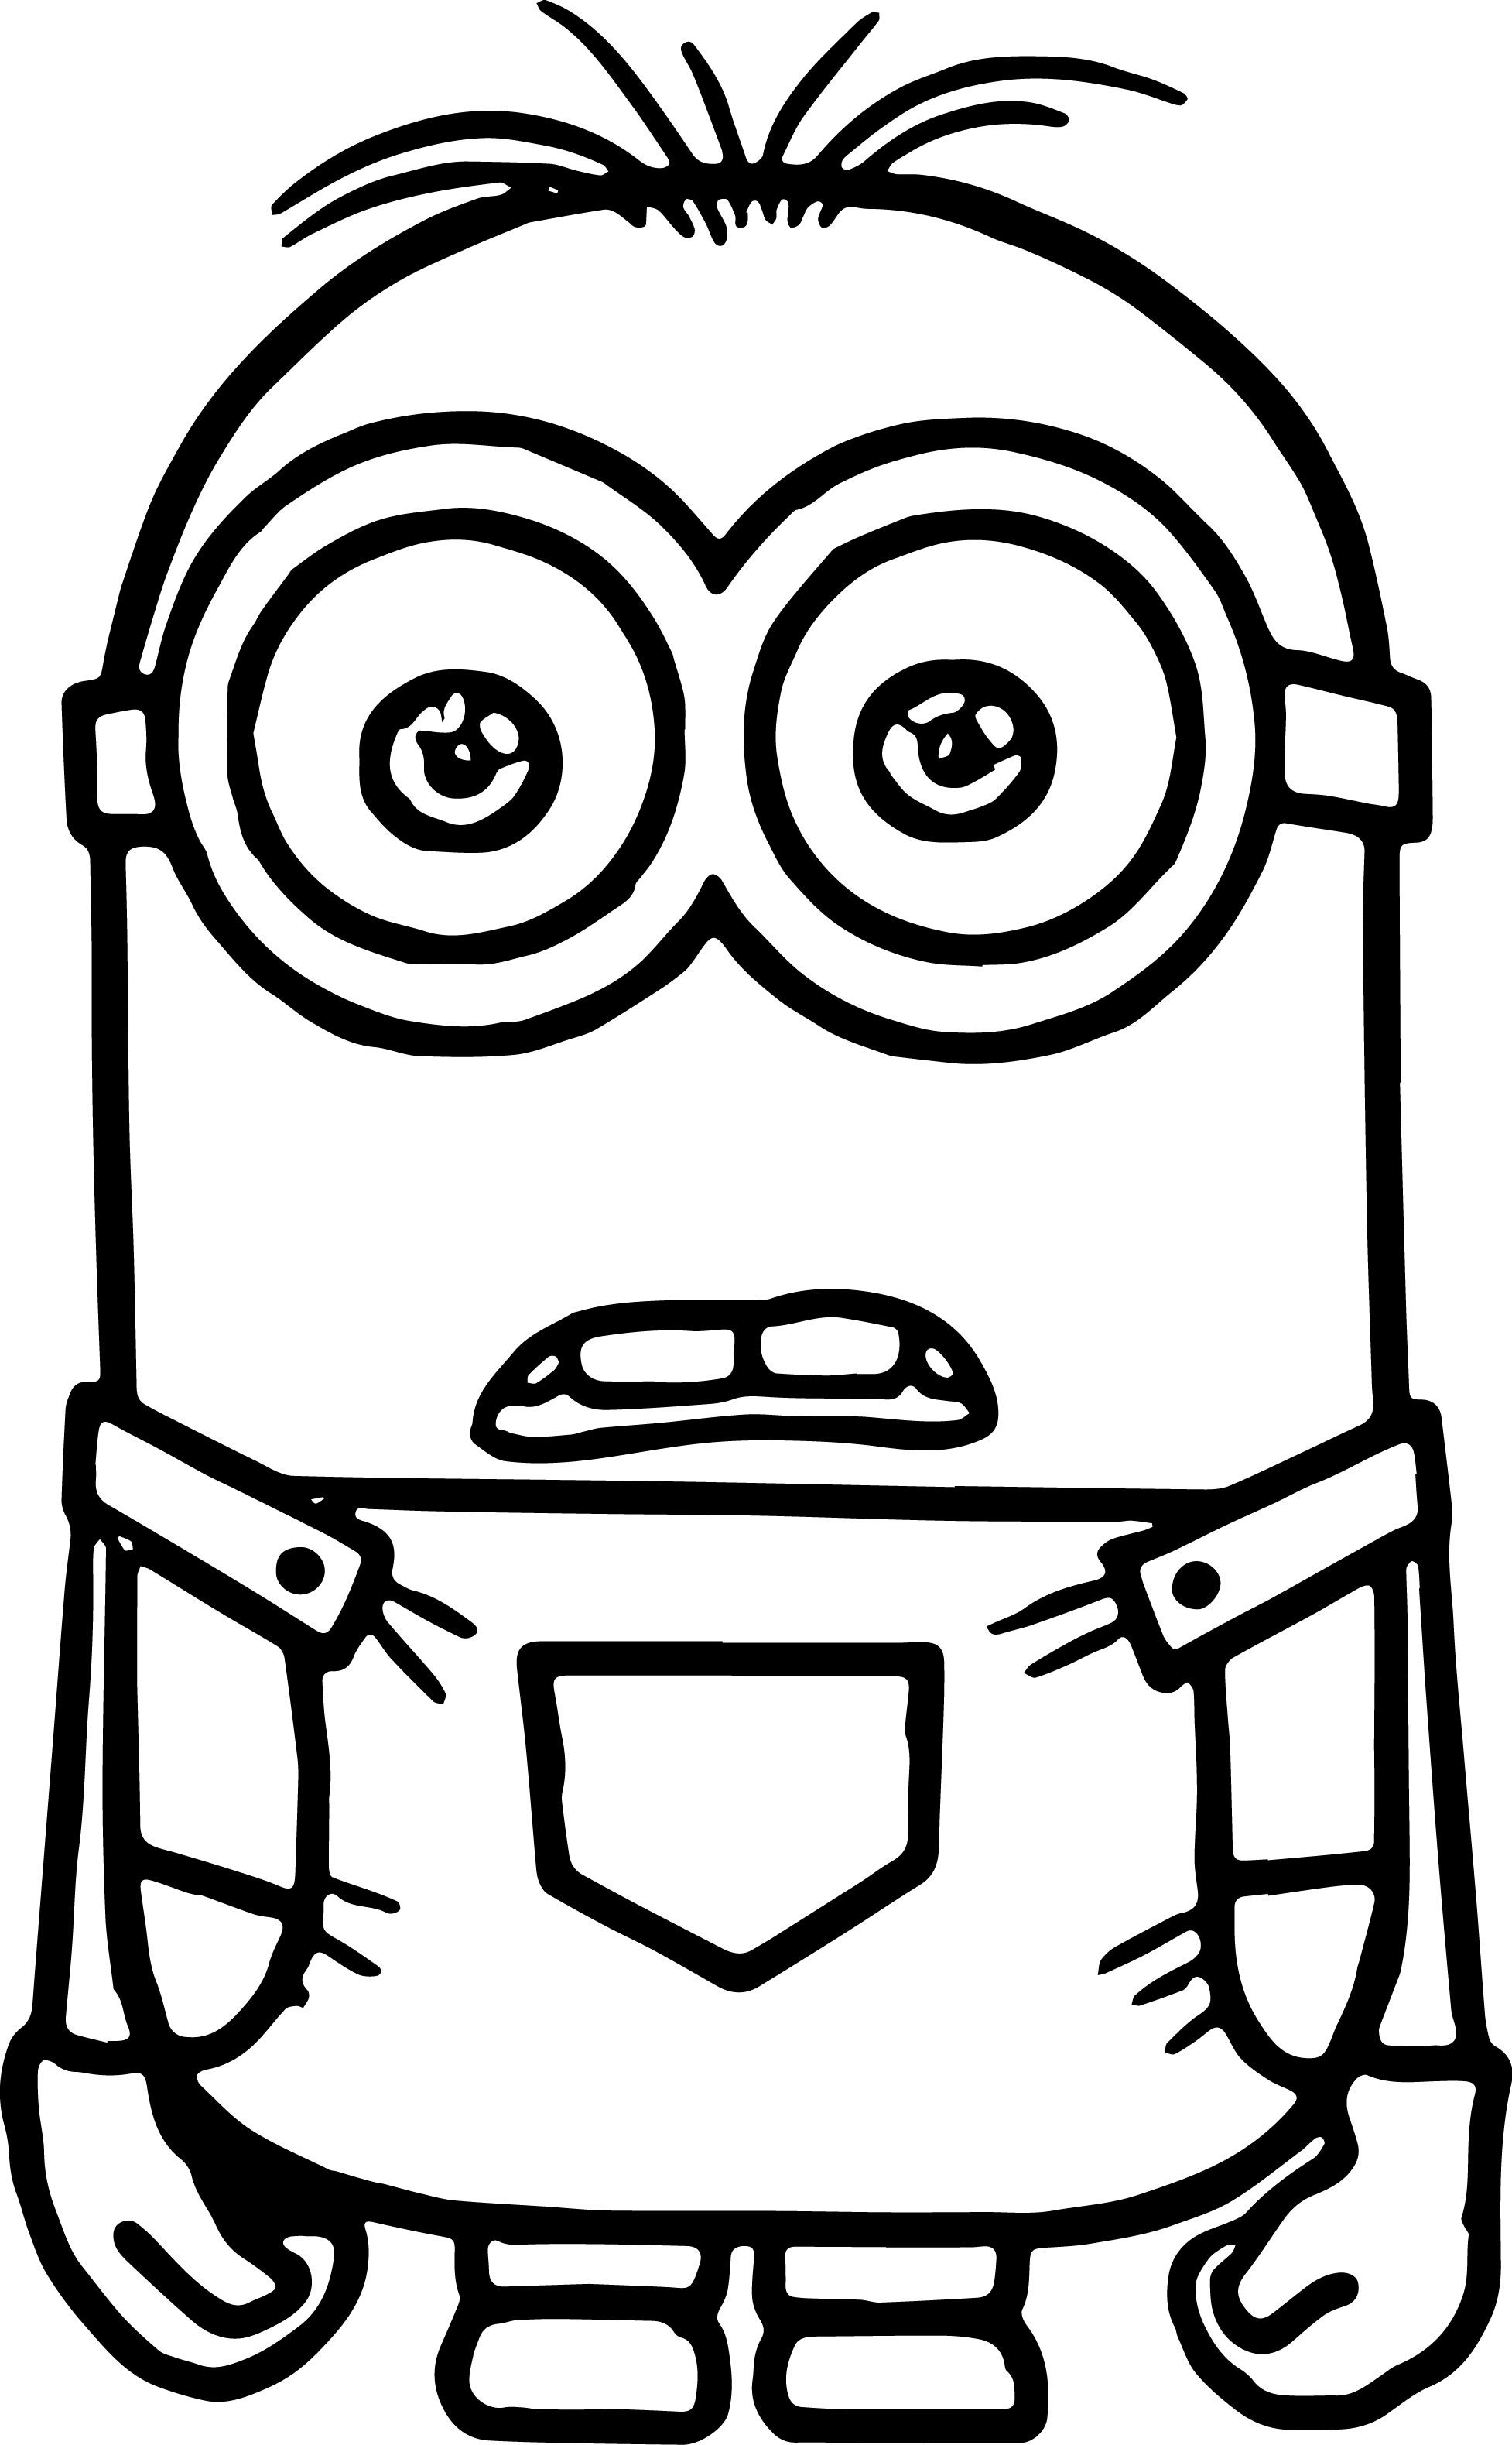 Free coloring pages of minions halloween Wallpaper Nha p